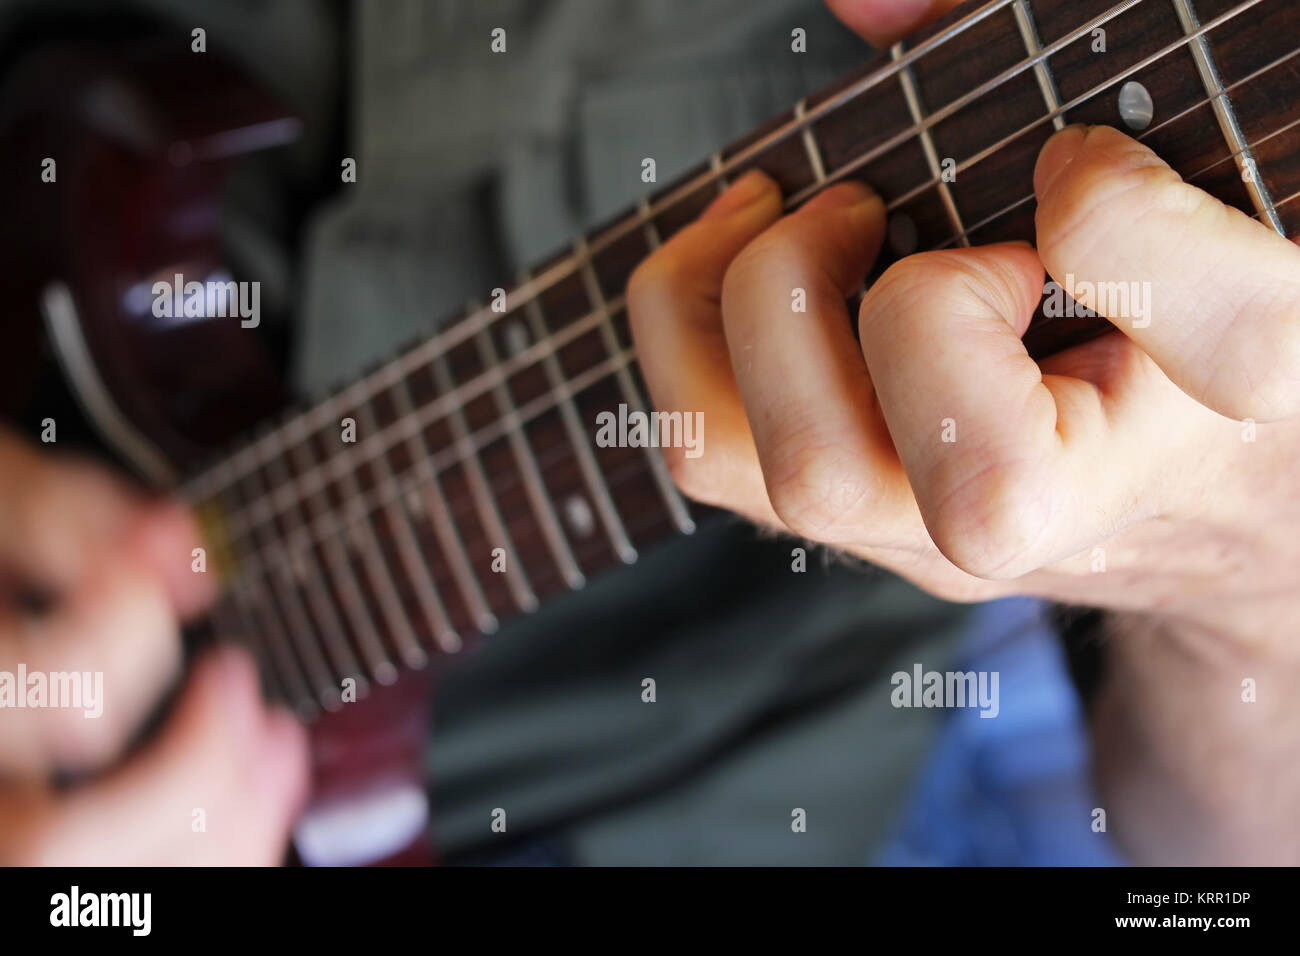 Closeup on musician's hand forming a chord on an electric guitar. Stock Photo